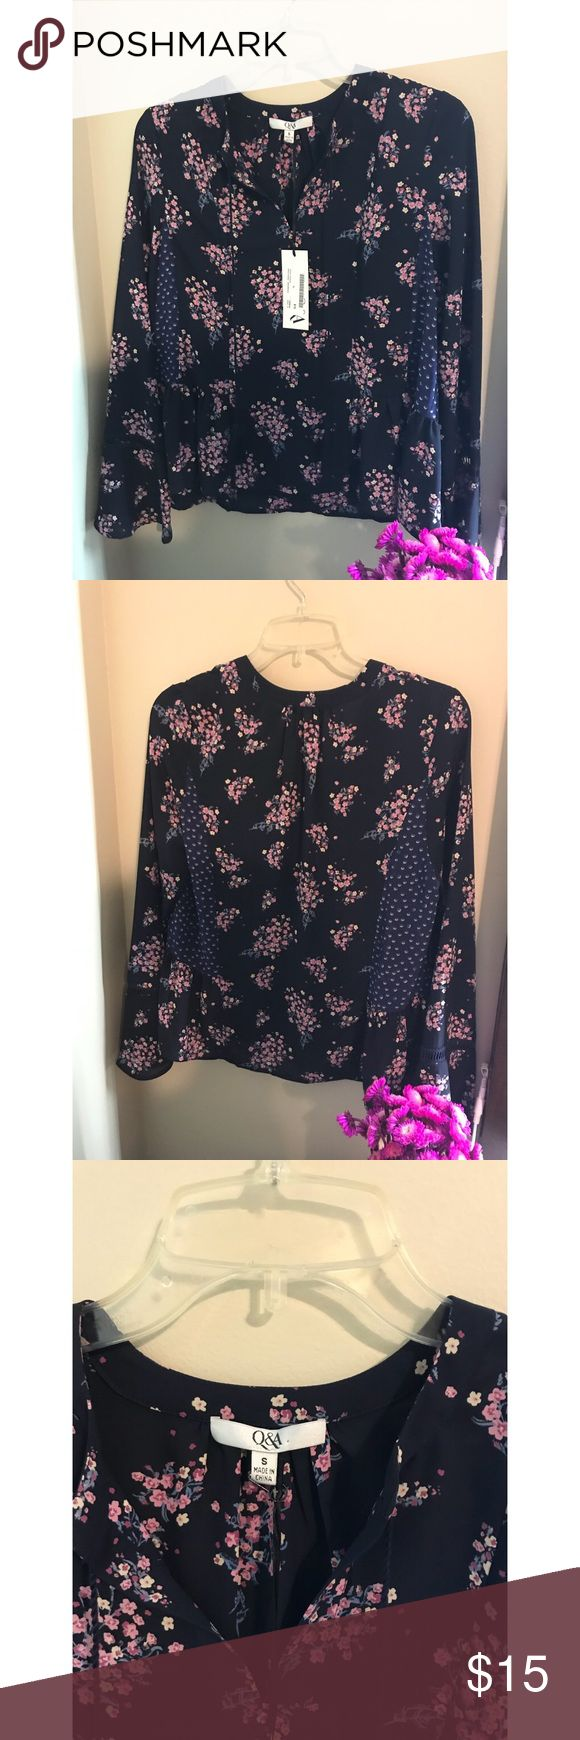 ✨Q&A Floral Blouse✨ Dark Navy Blue Floral Sheer Material Blouse!! NWT Size: Small Q&A Tops Blouses